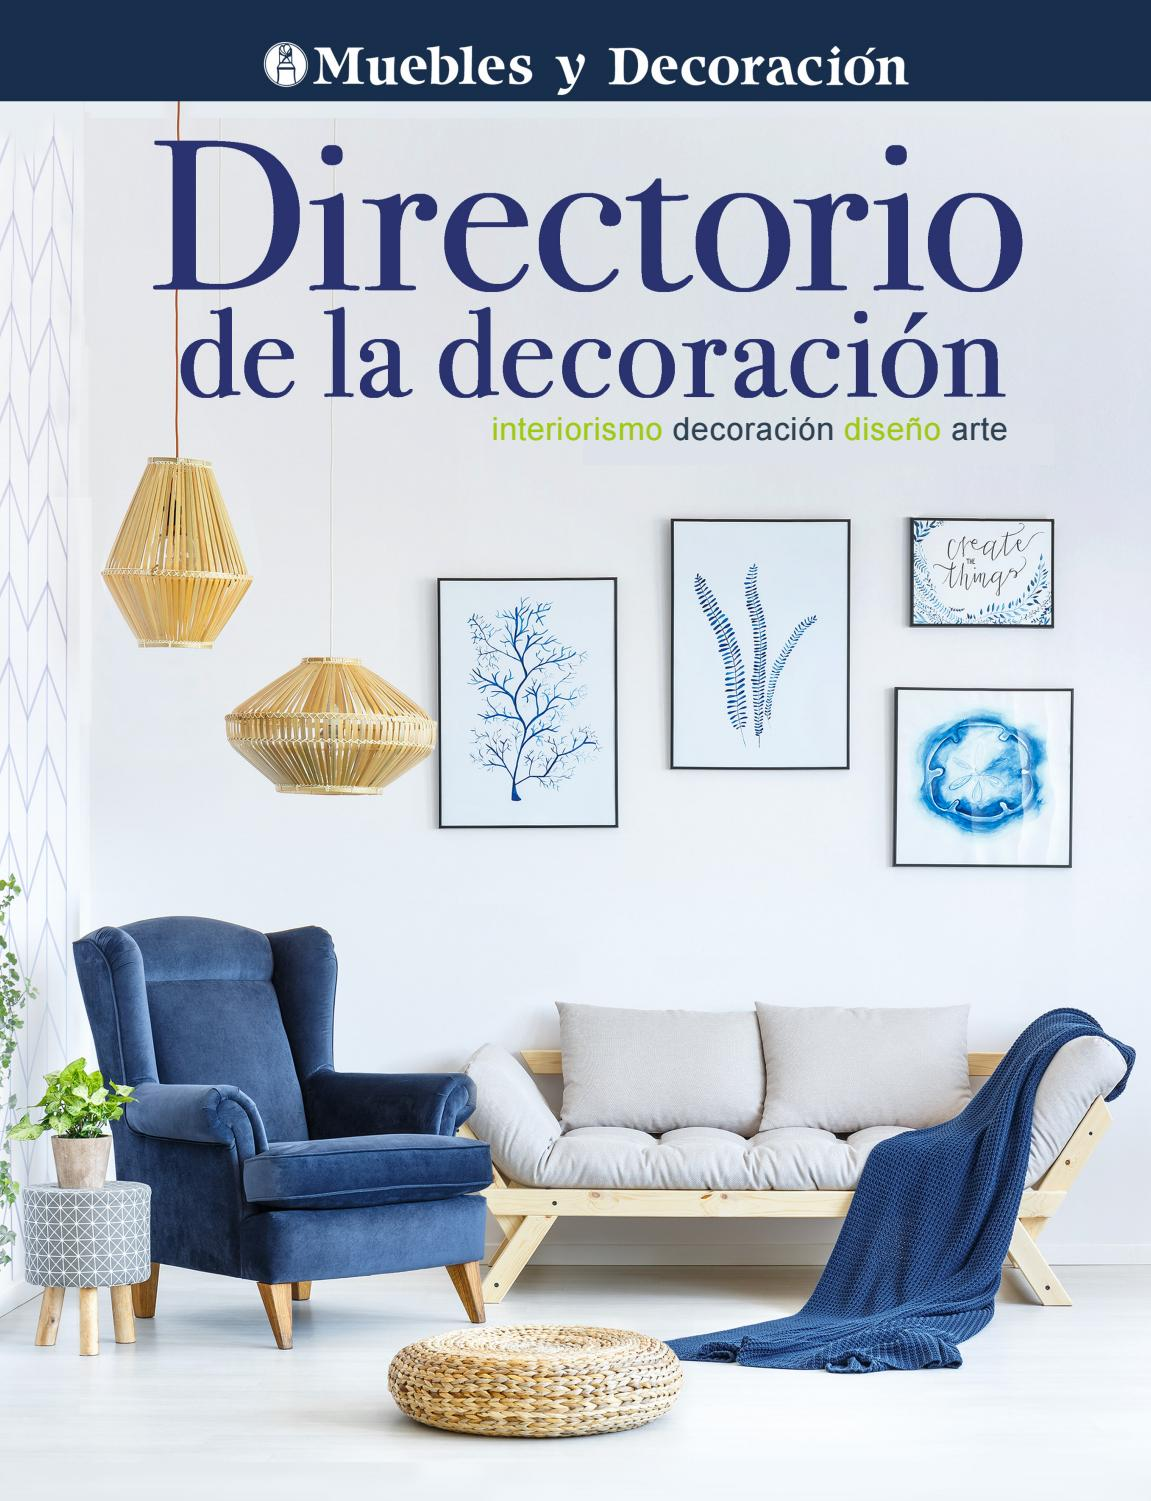 Muebles Hermanos Mora Directorio De La DecoraciÓn By Revista Muebles Y Decoración Issuu